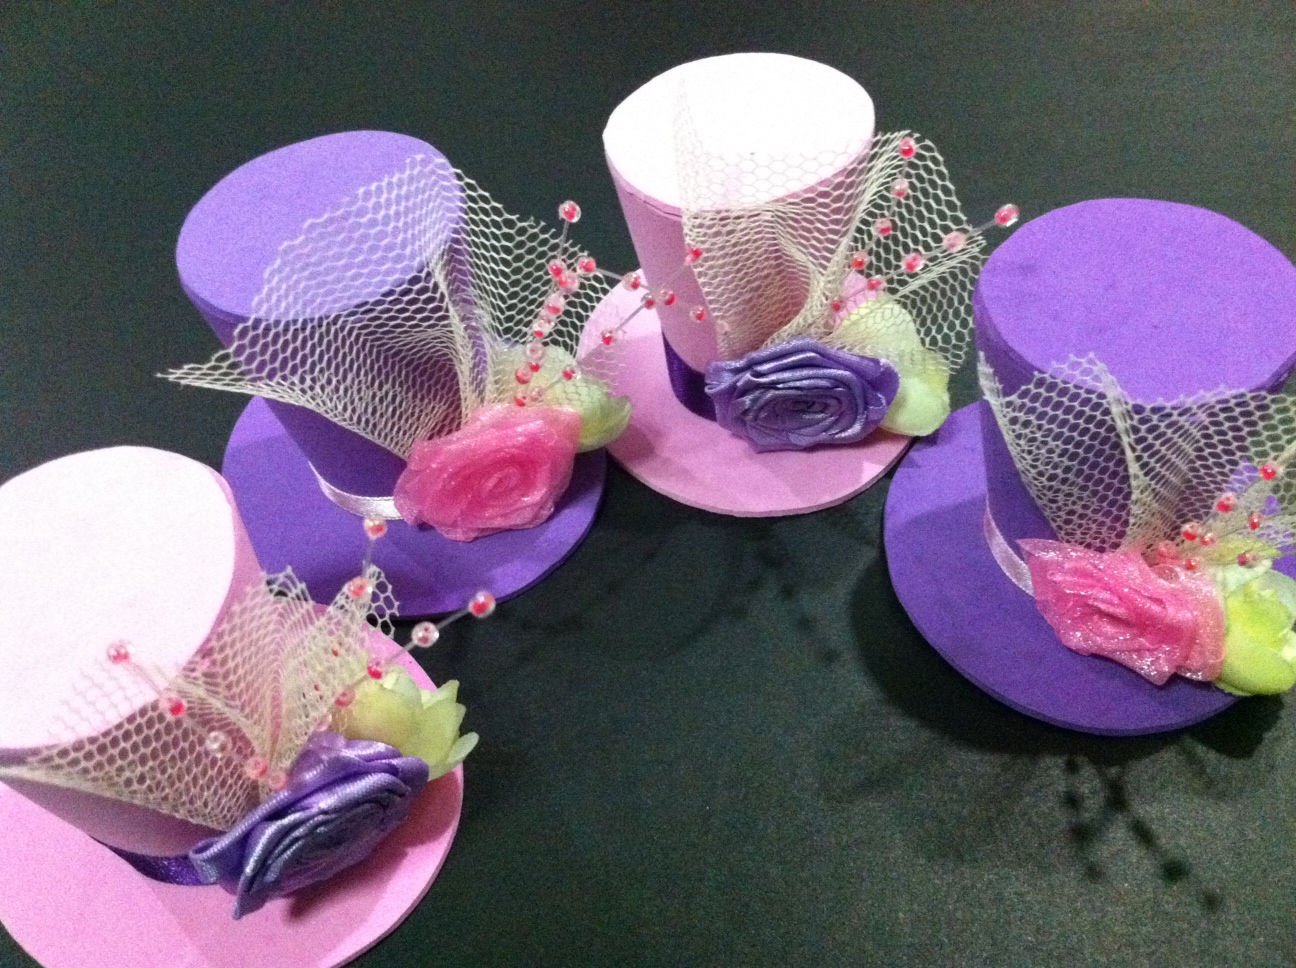 Bunay 39 s little corner fun diy mini top hat headpieces for Tiny top hats for crafts